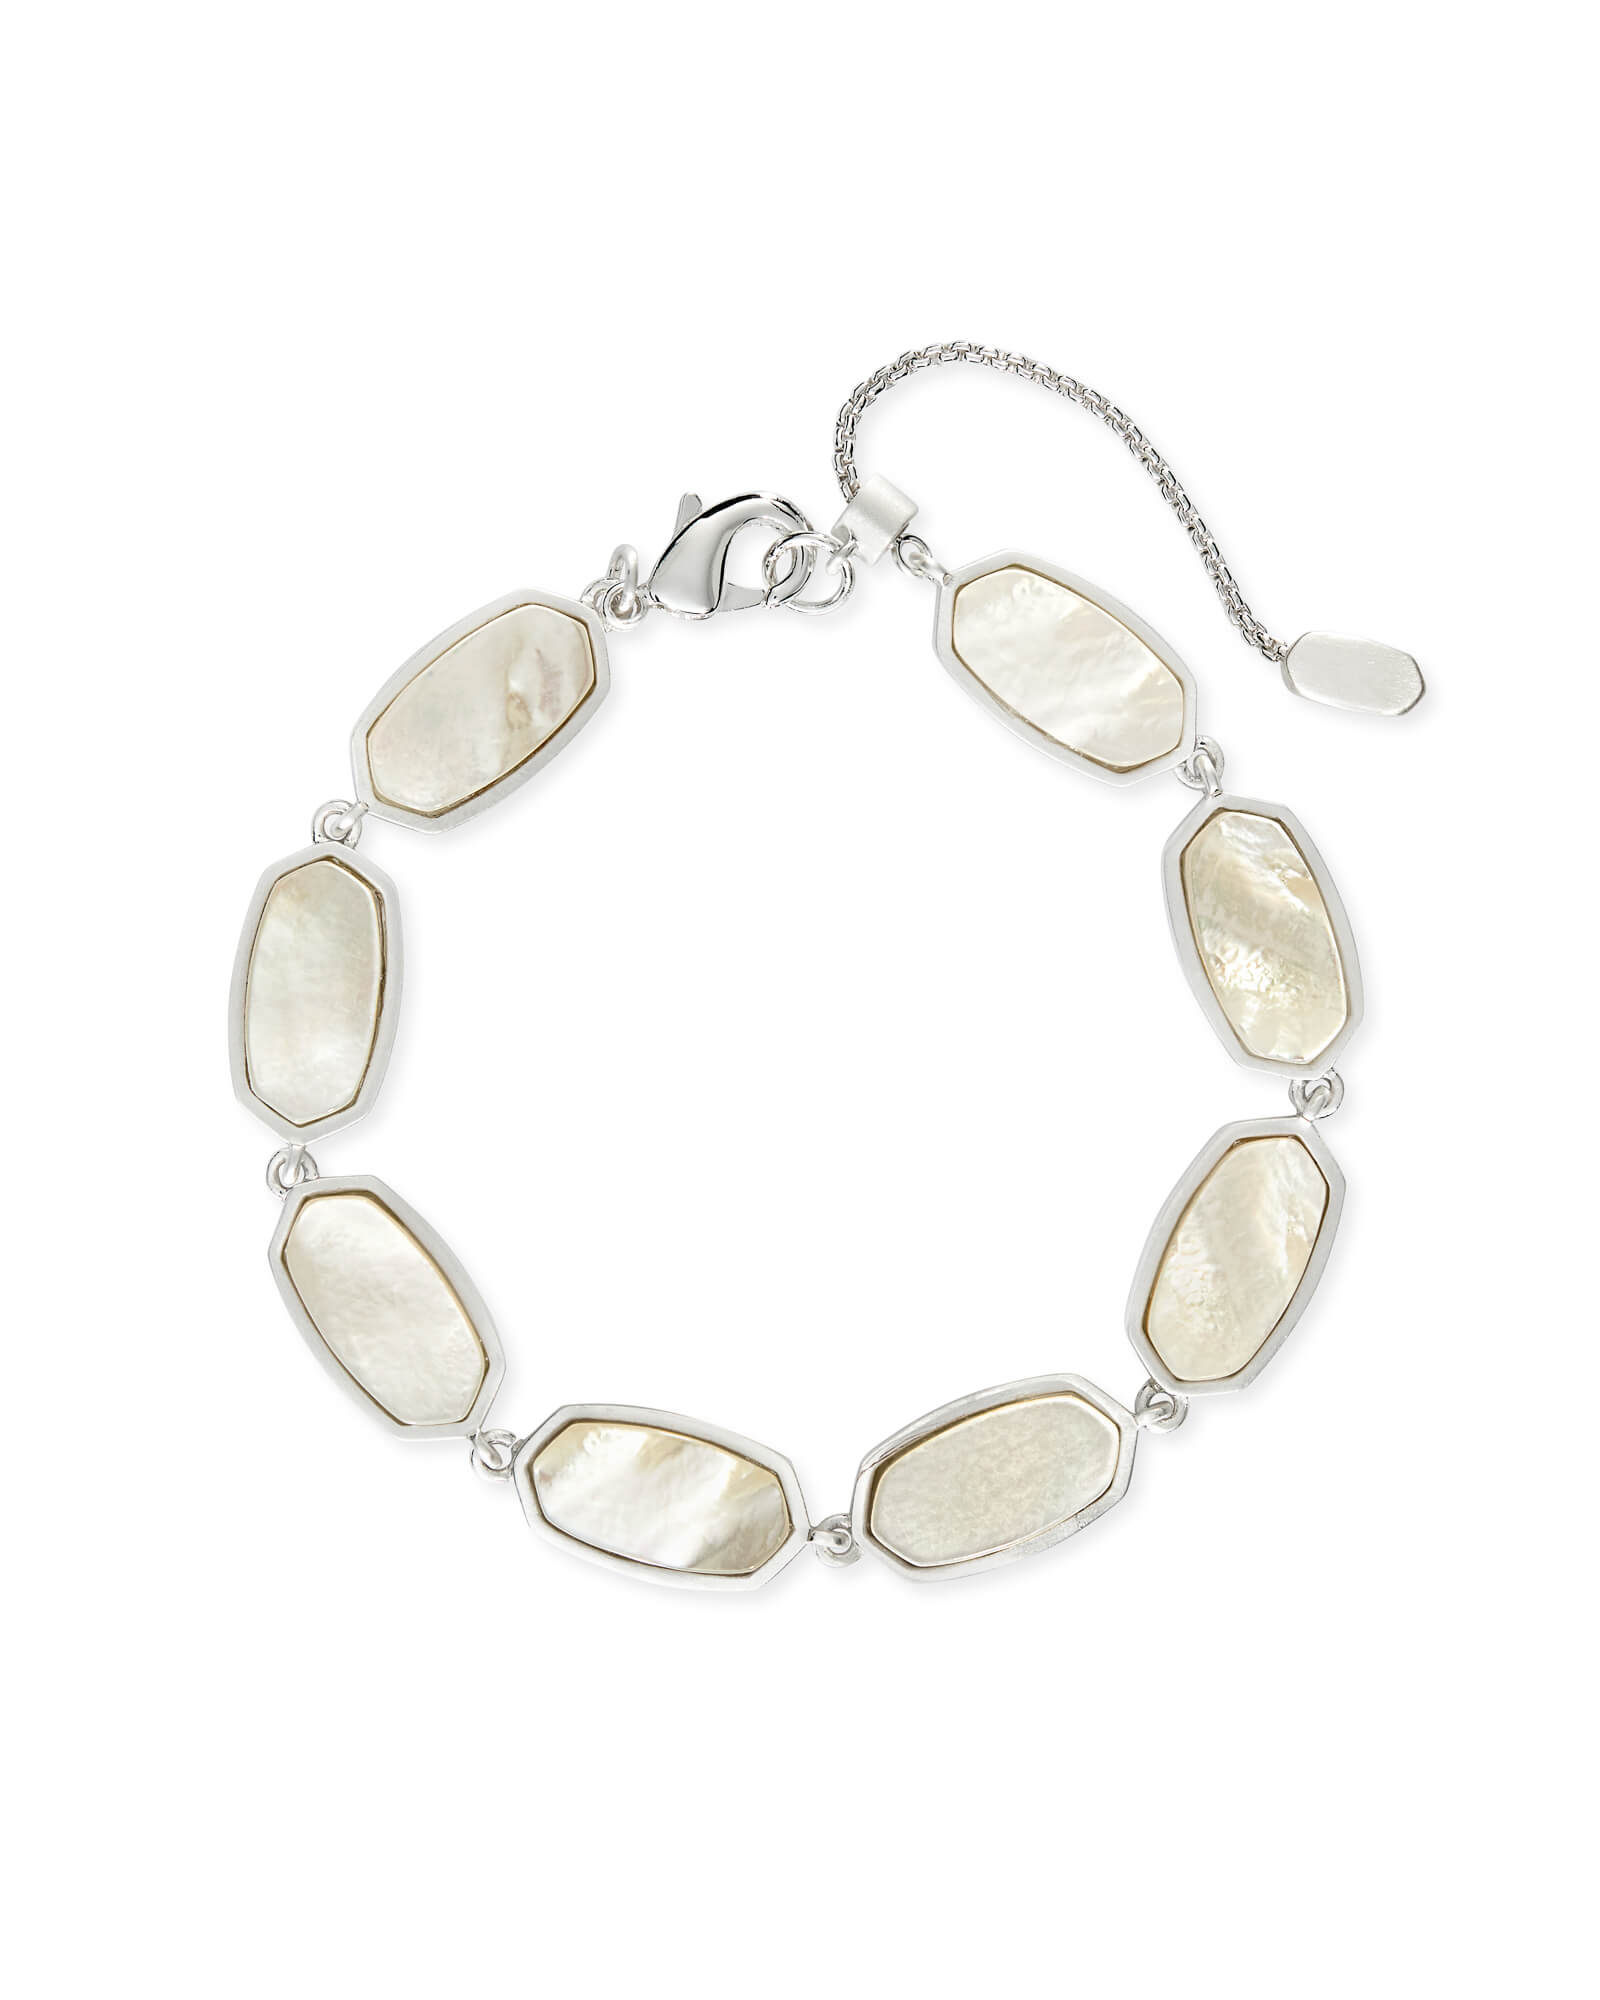 Millie Link Bracelet in Bright Silver